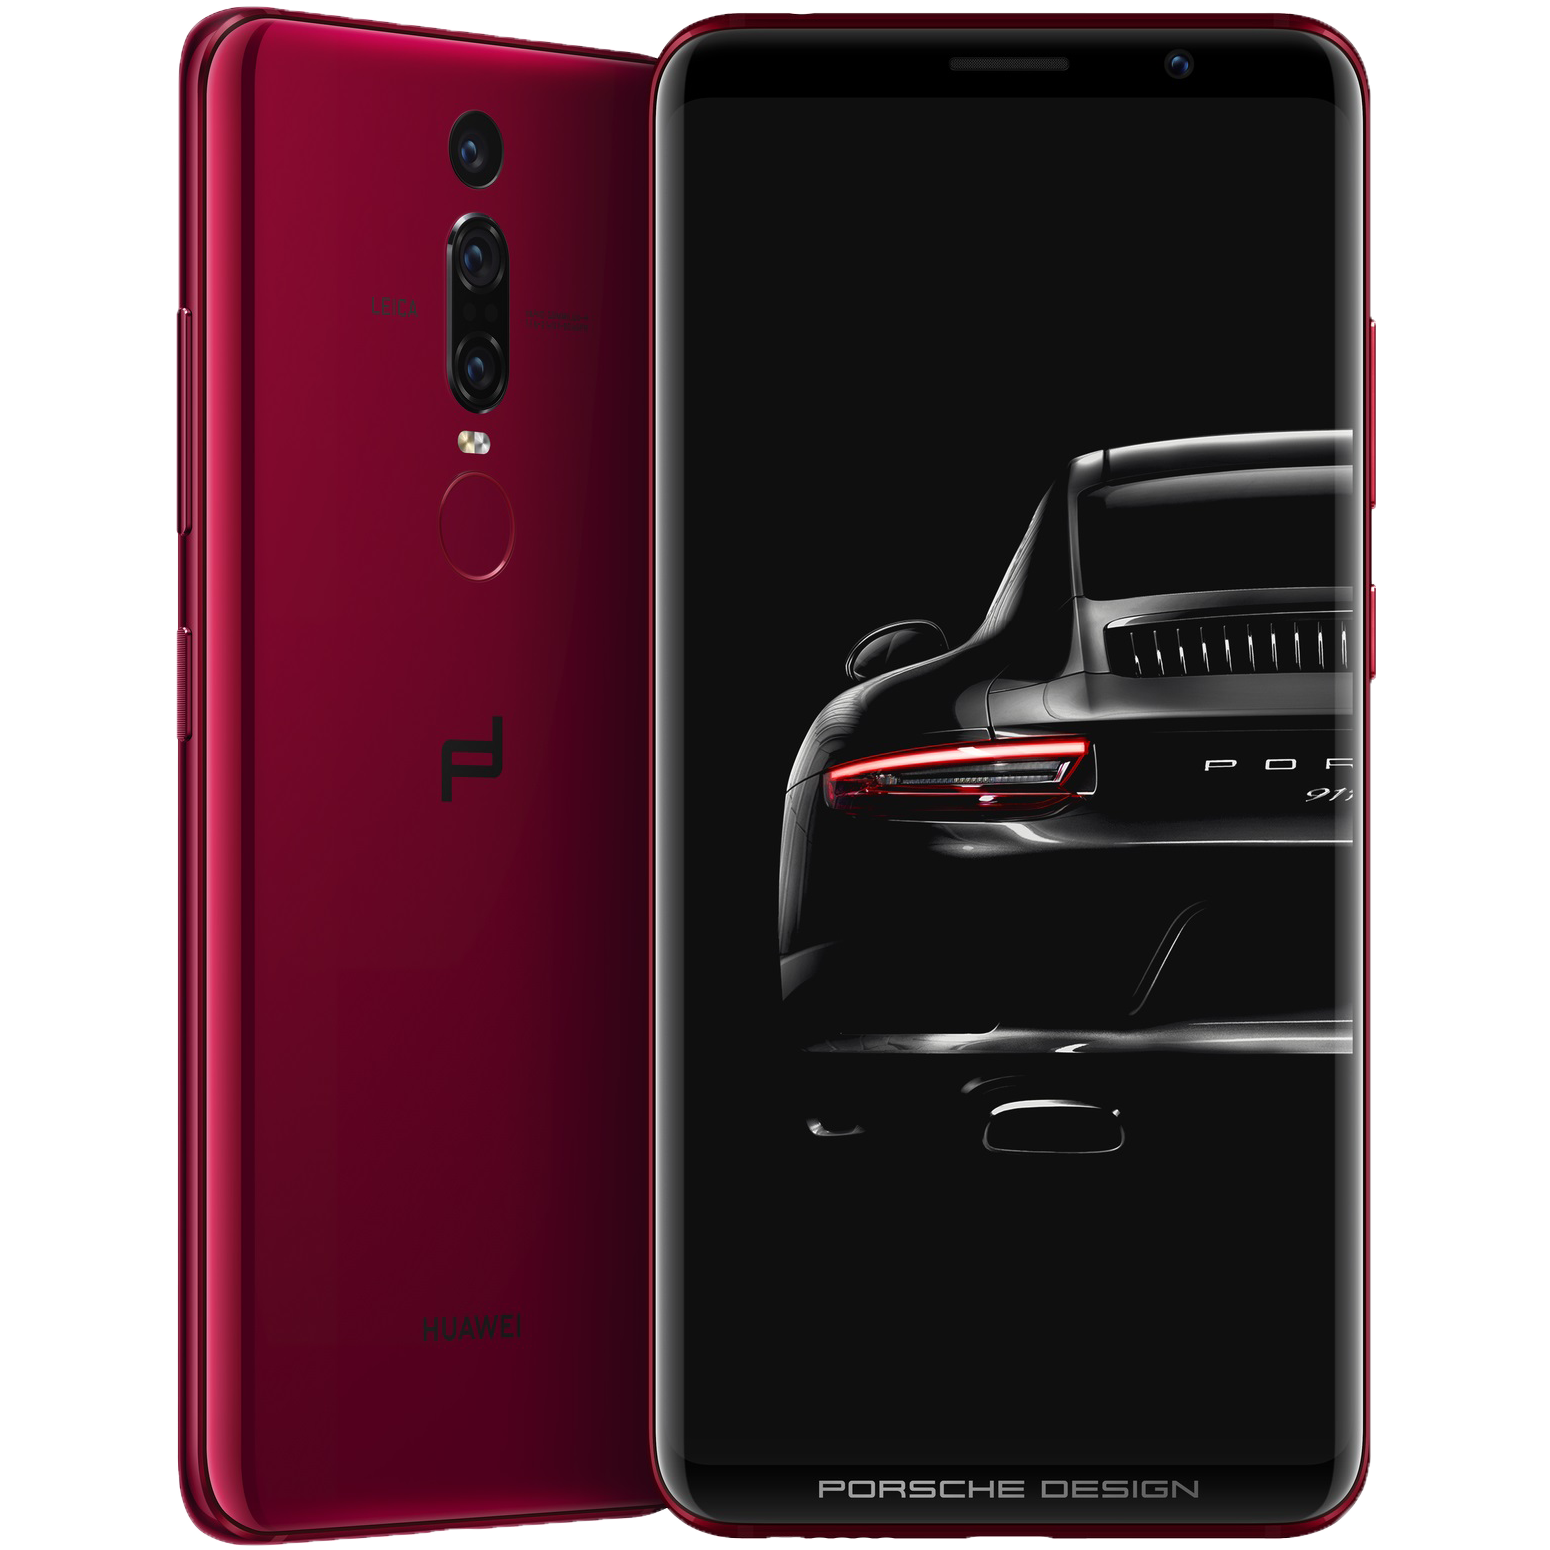 porsche design huawei mate rs red 512gb. Black Bedroom Furniture Sets. Home Design Ideas